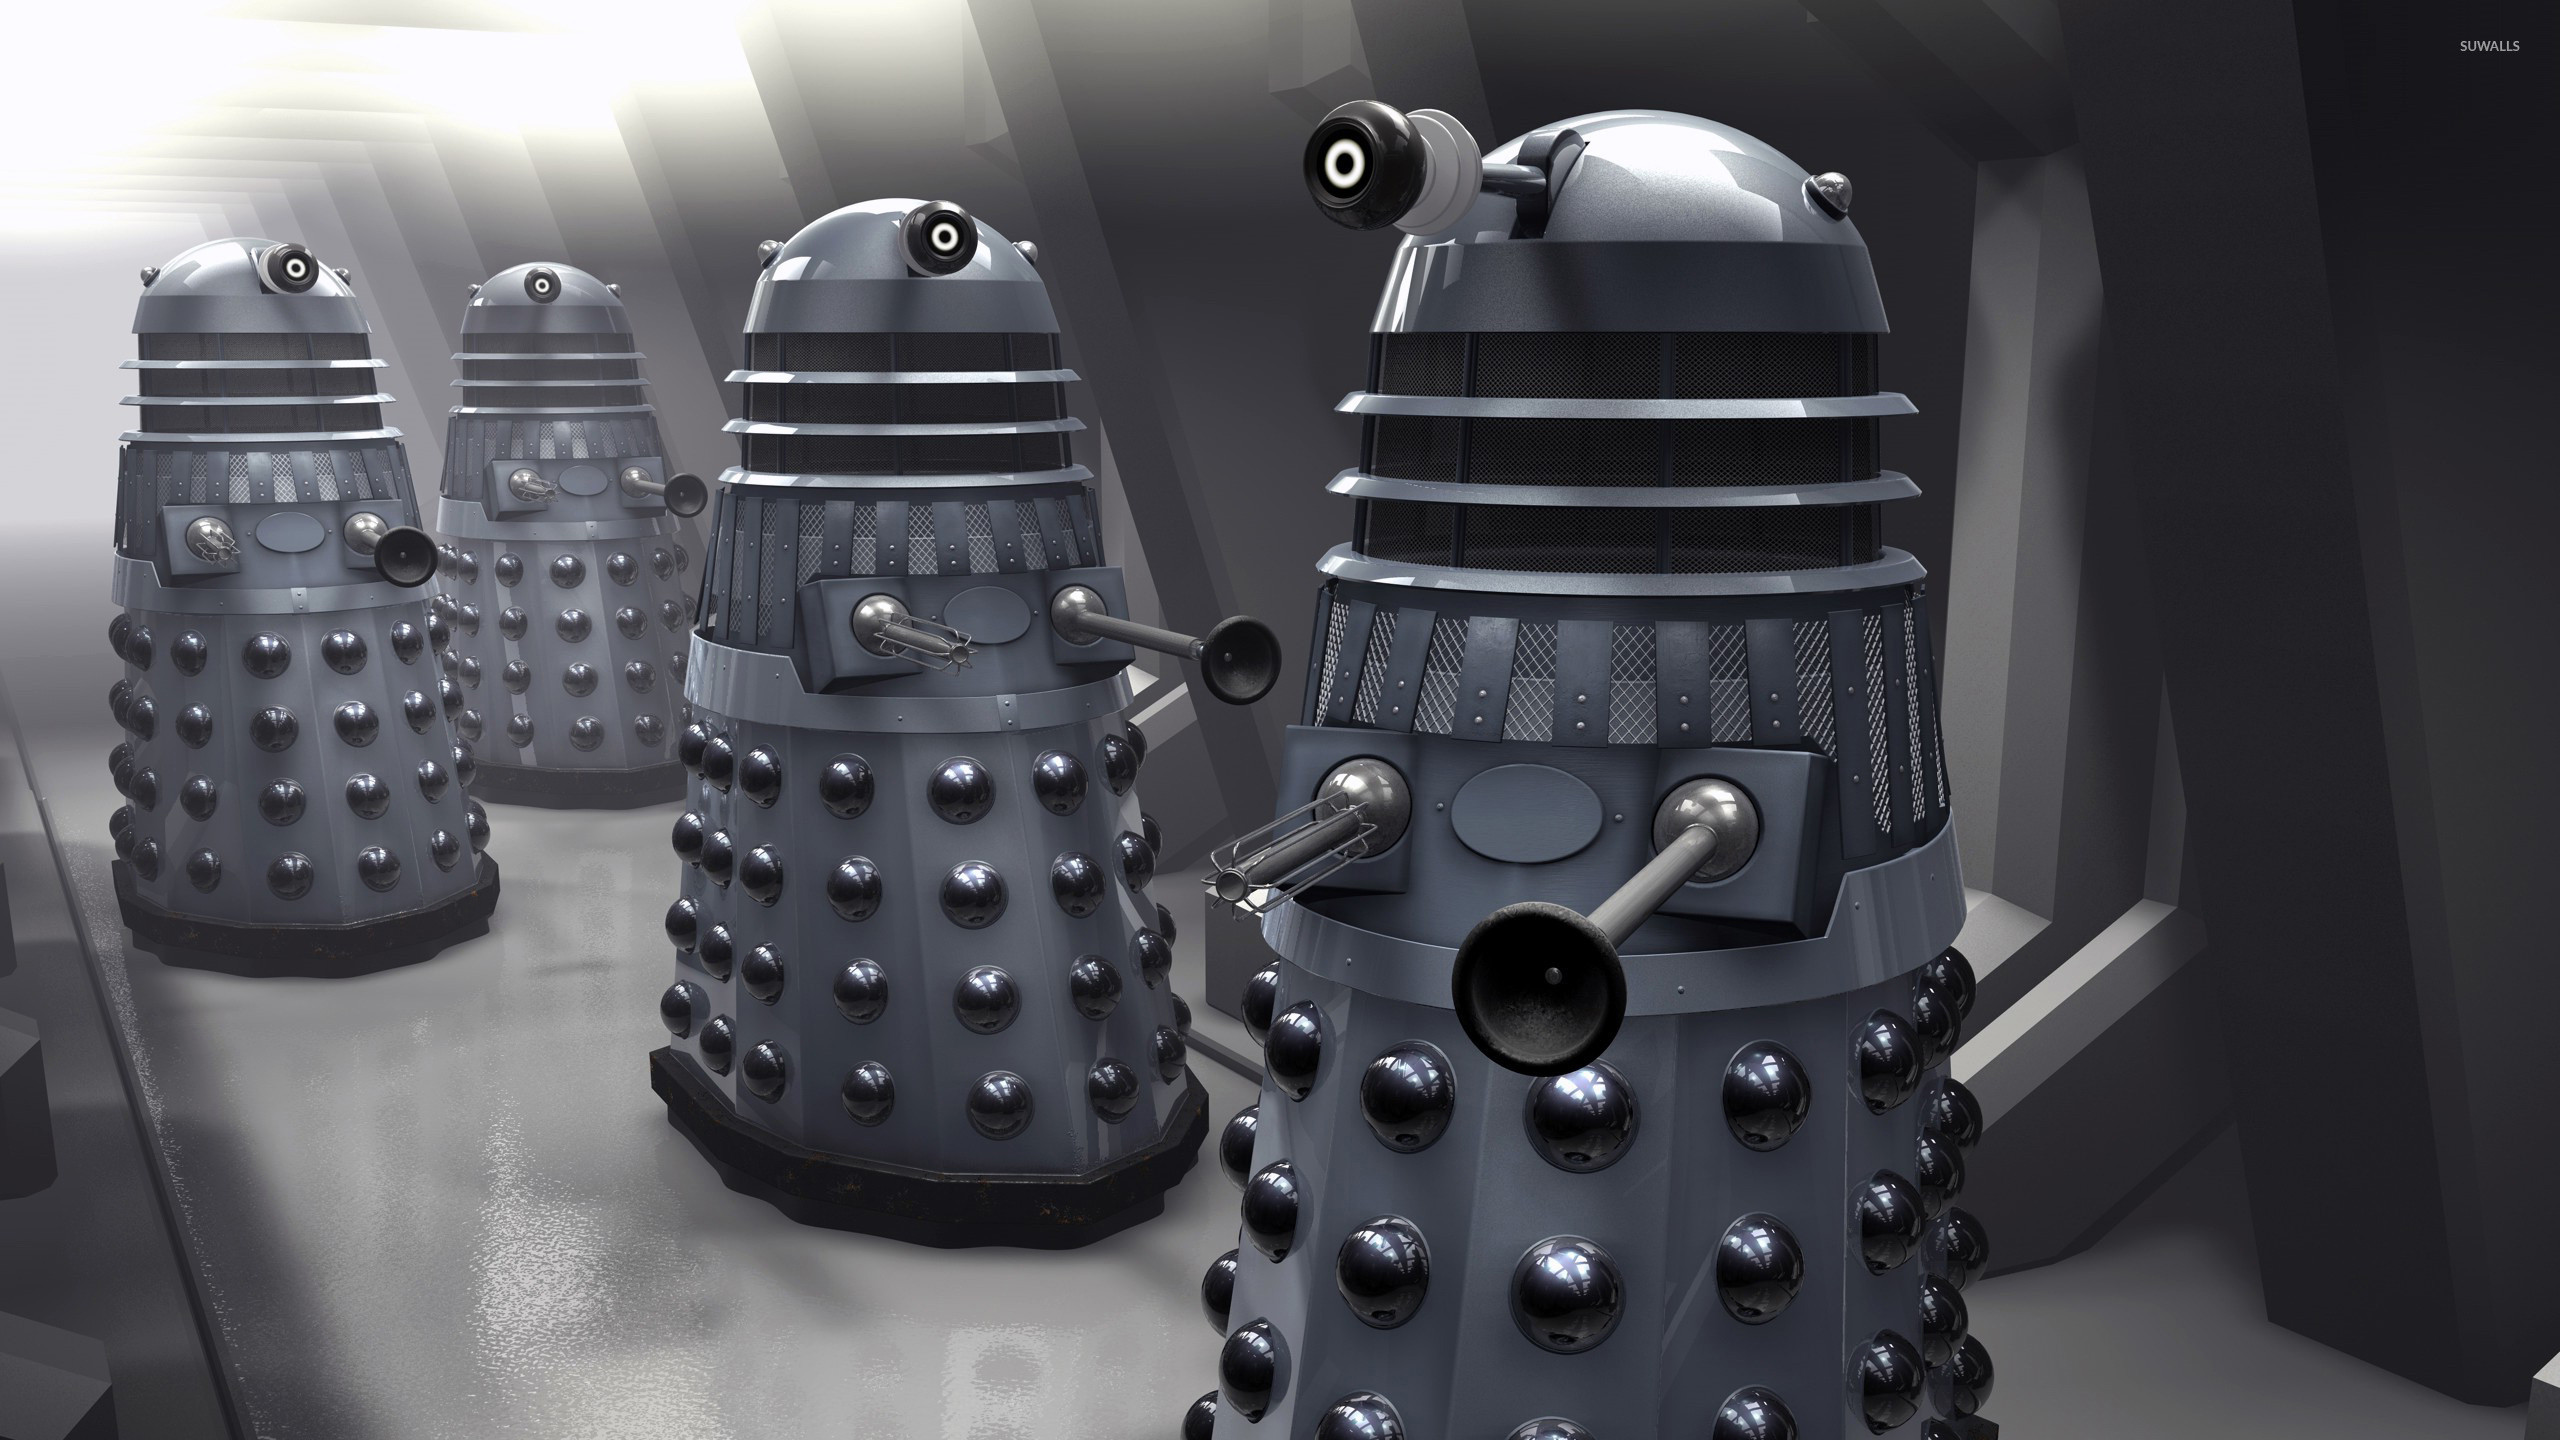 2560x1440 Dalek - Doctor Who wallpaper